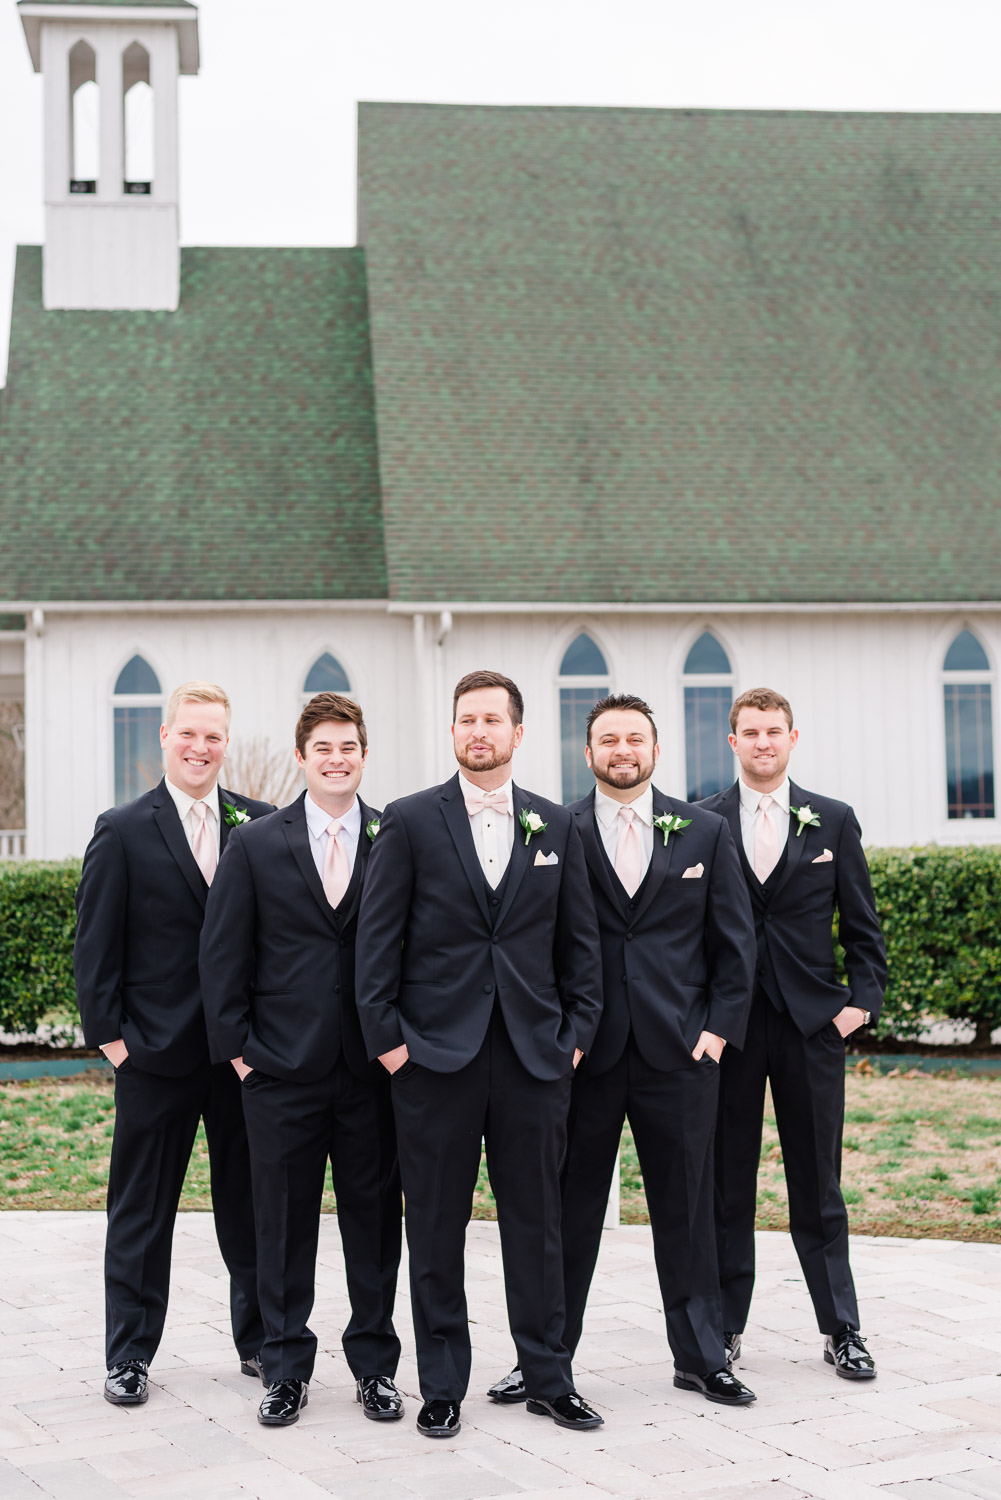 groomsmen outside of the church at Whitestone country Inn wearing black suits and pink bowties